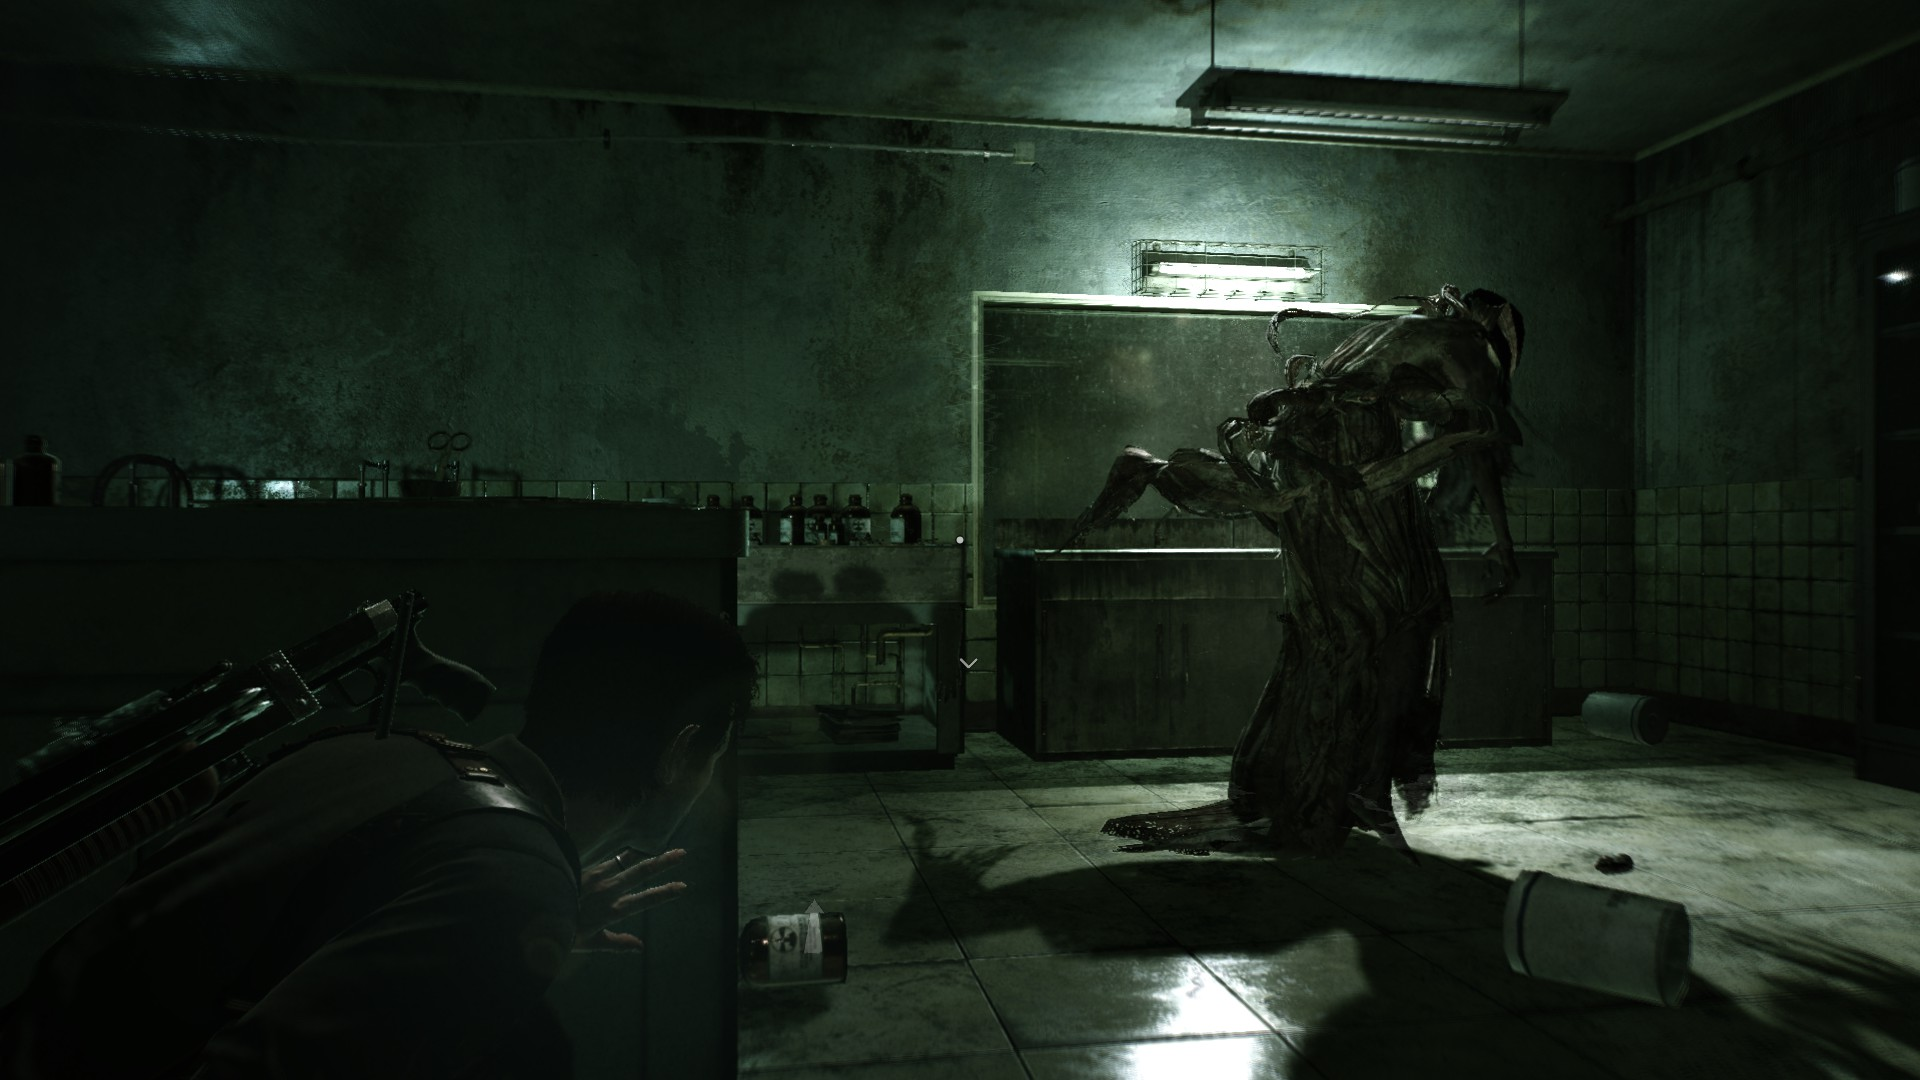 20181123134451_1.jpg - Evil Within 2, the